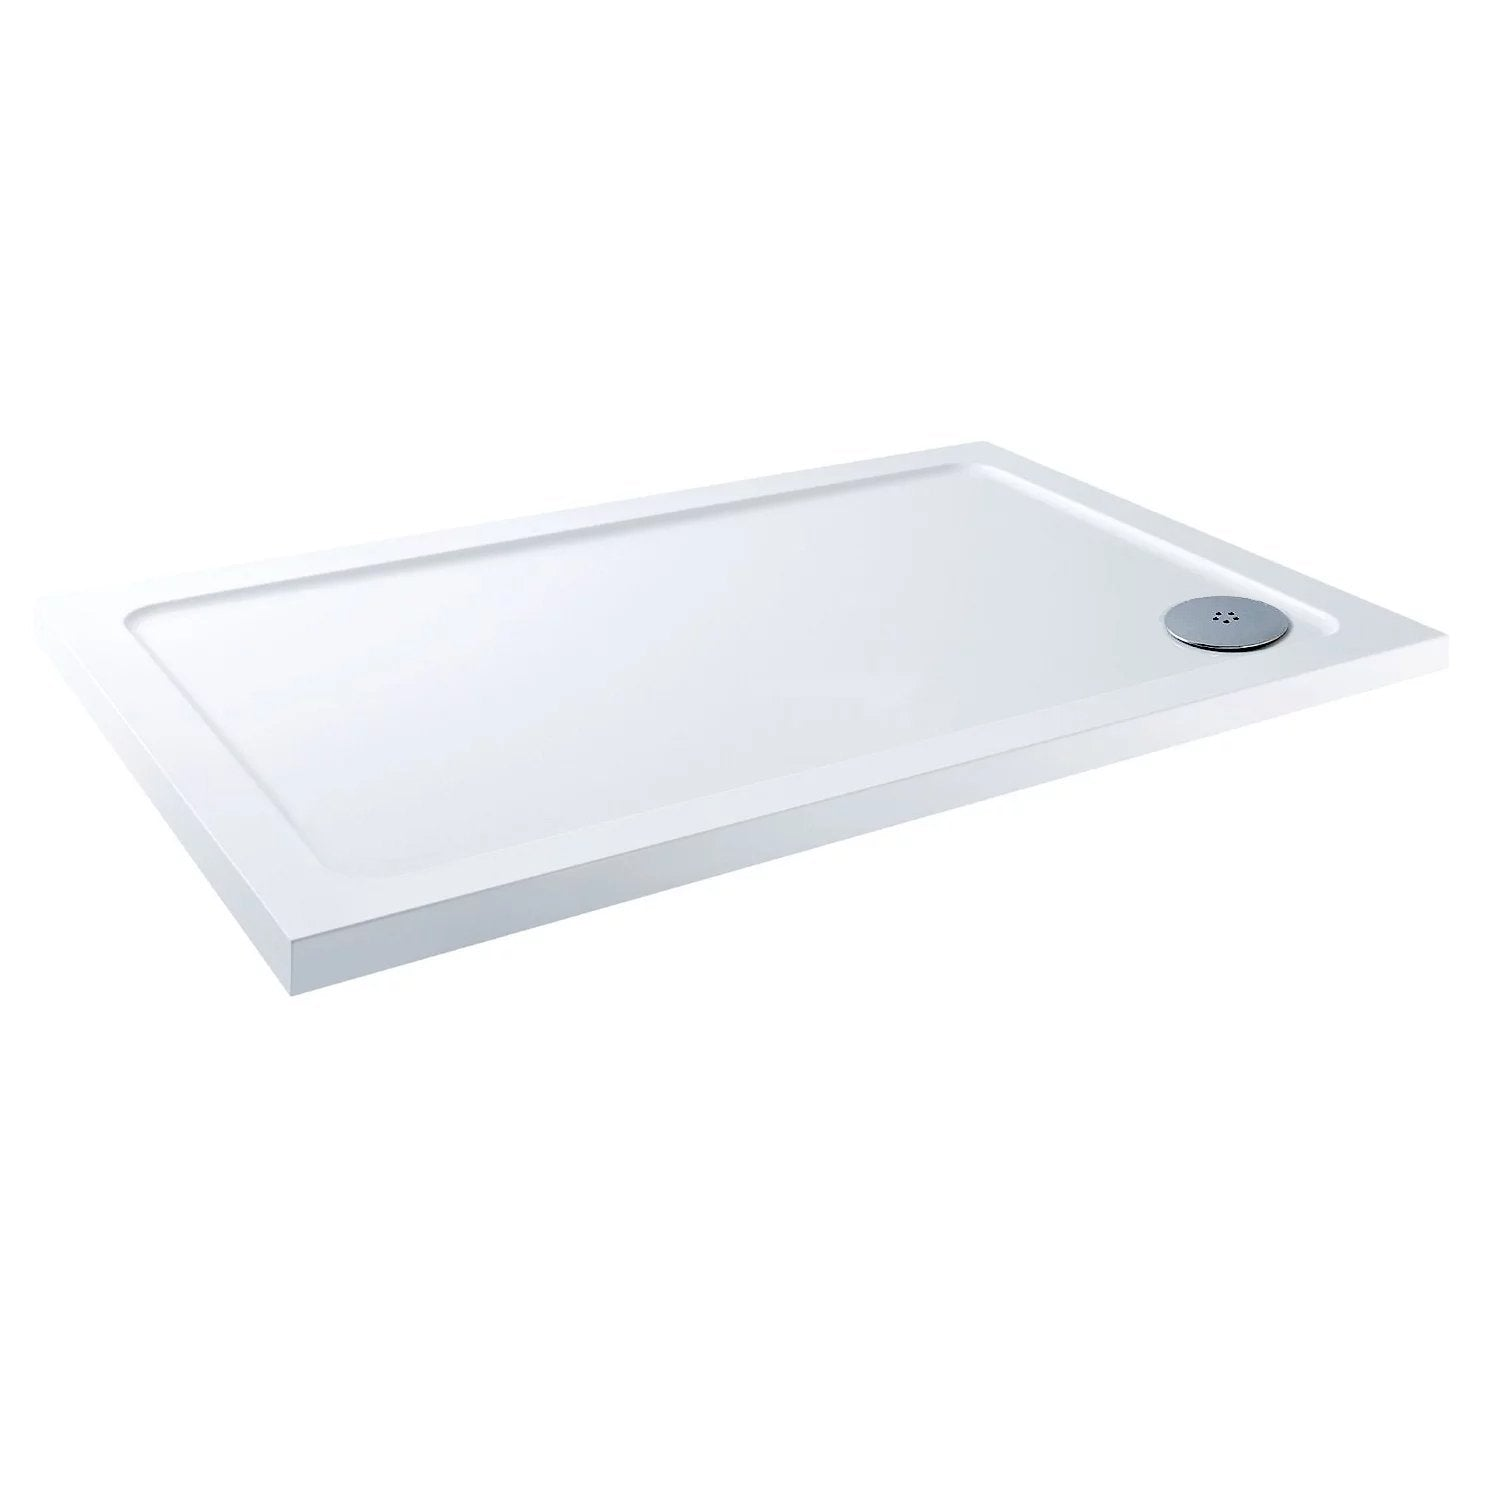 Cassellie C-Series Rectangular Shower Tray with Fast Flow Waste - 900mm x 760mm - Stone Resin